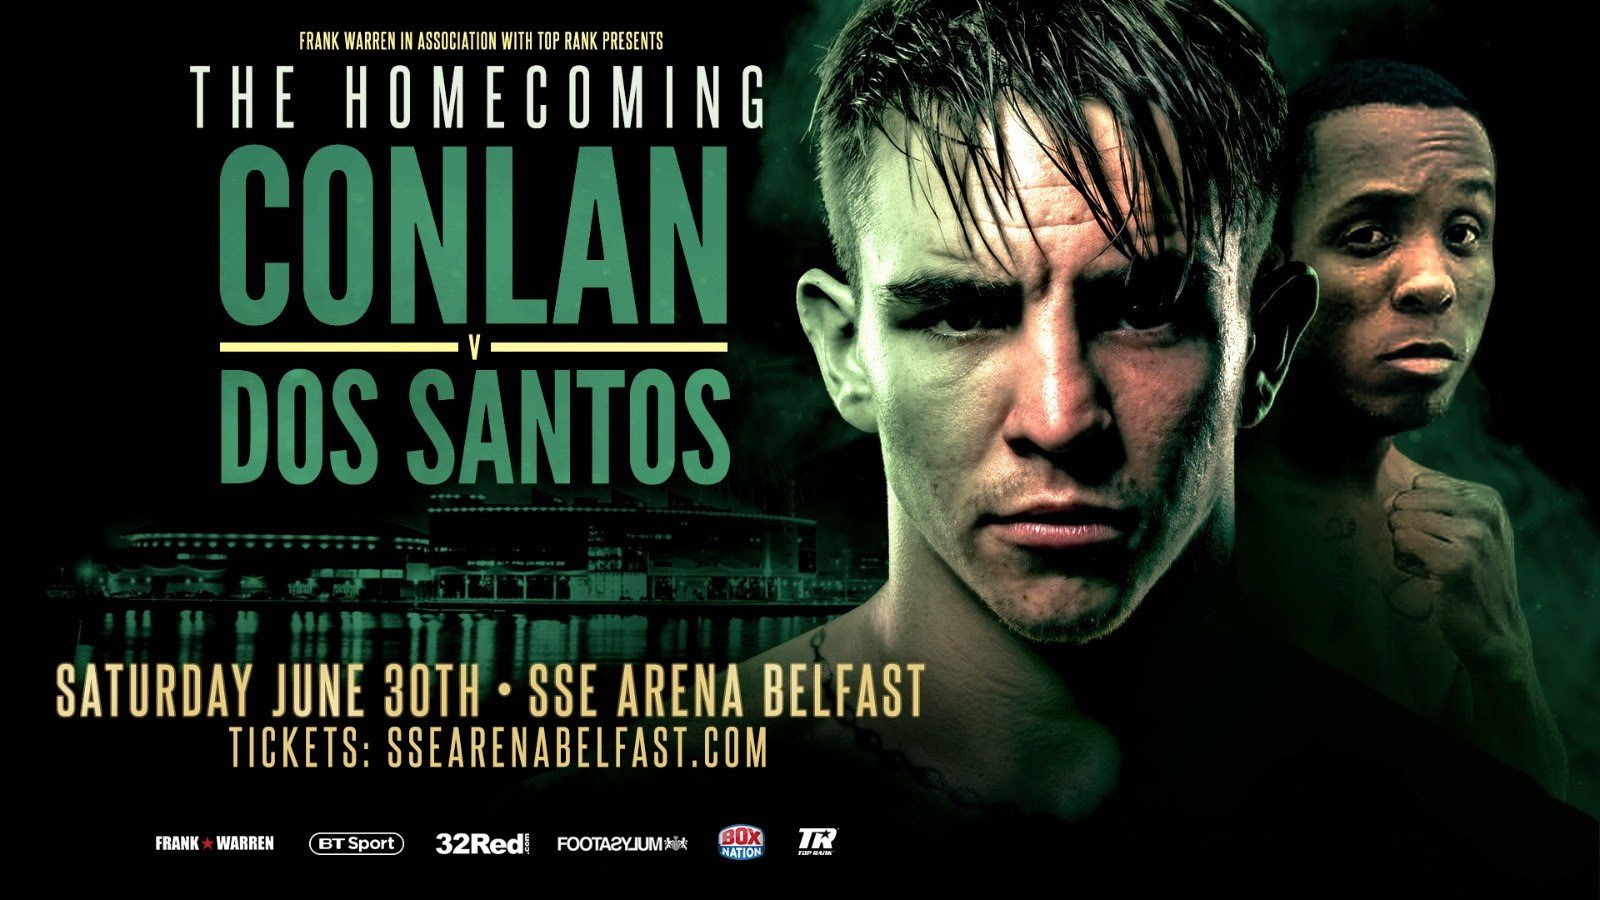 Michael Conlan - The final press conference for Featherweight Michael Conlan's homecoming bout against  Brazilian Adeilson Dos Santos ahead of Saturday's fight at Belfast's SSE Arena was held today.